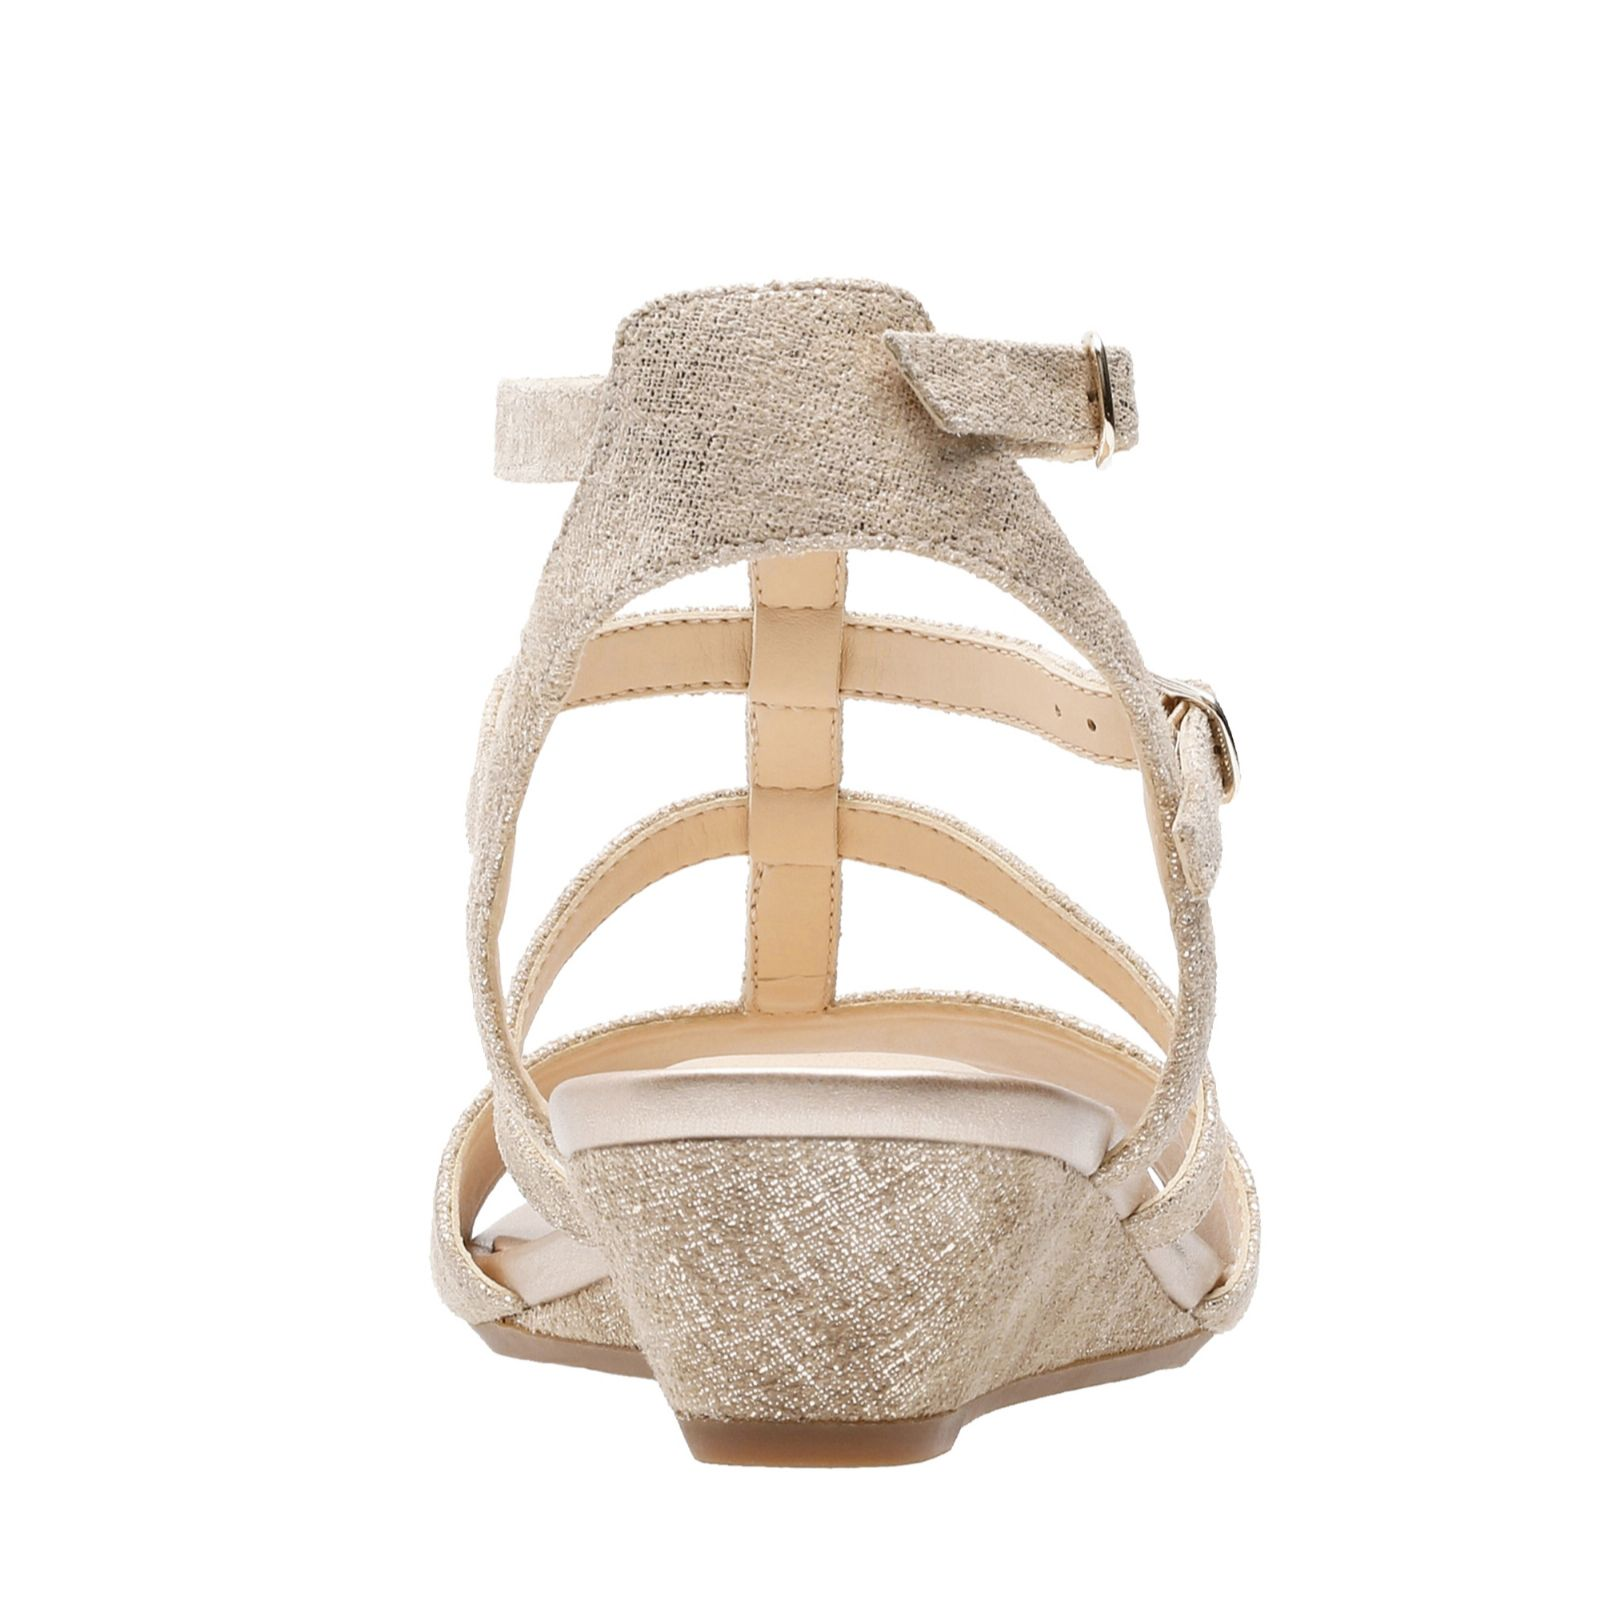 530085fa98f3 Clarks Parram Spice Strappy Sandal Standard Fit - QVC UK